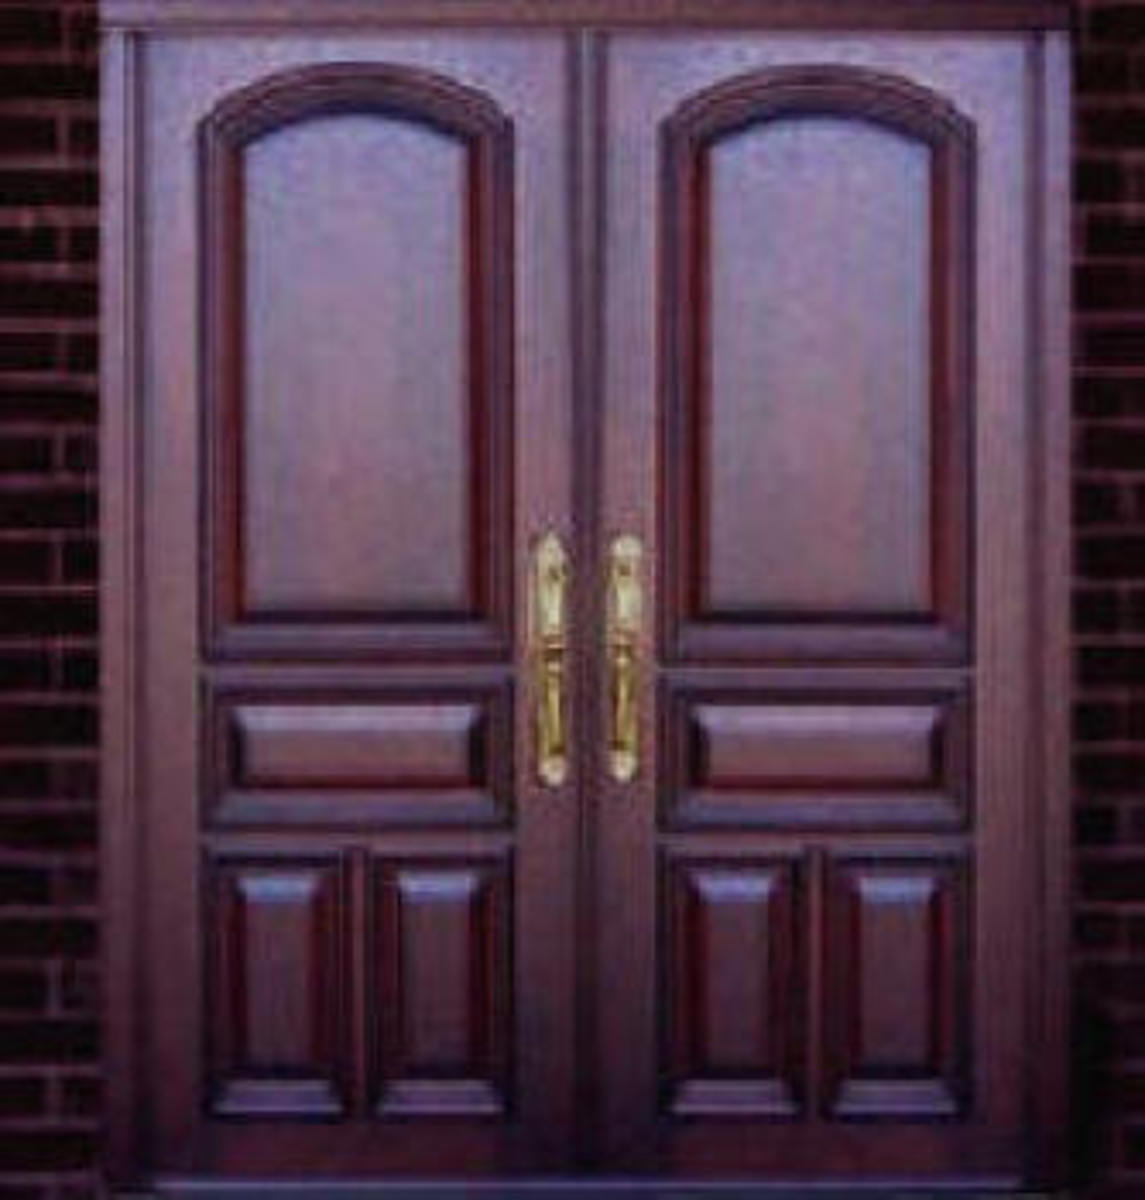 Home Improvement - Front Door Manufacturers | Entry Exterior Doors | Fiberglass Insulated | Add to Curb Appeal